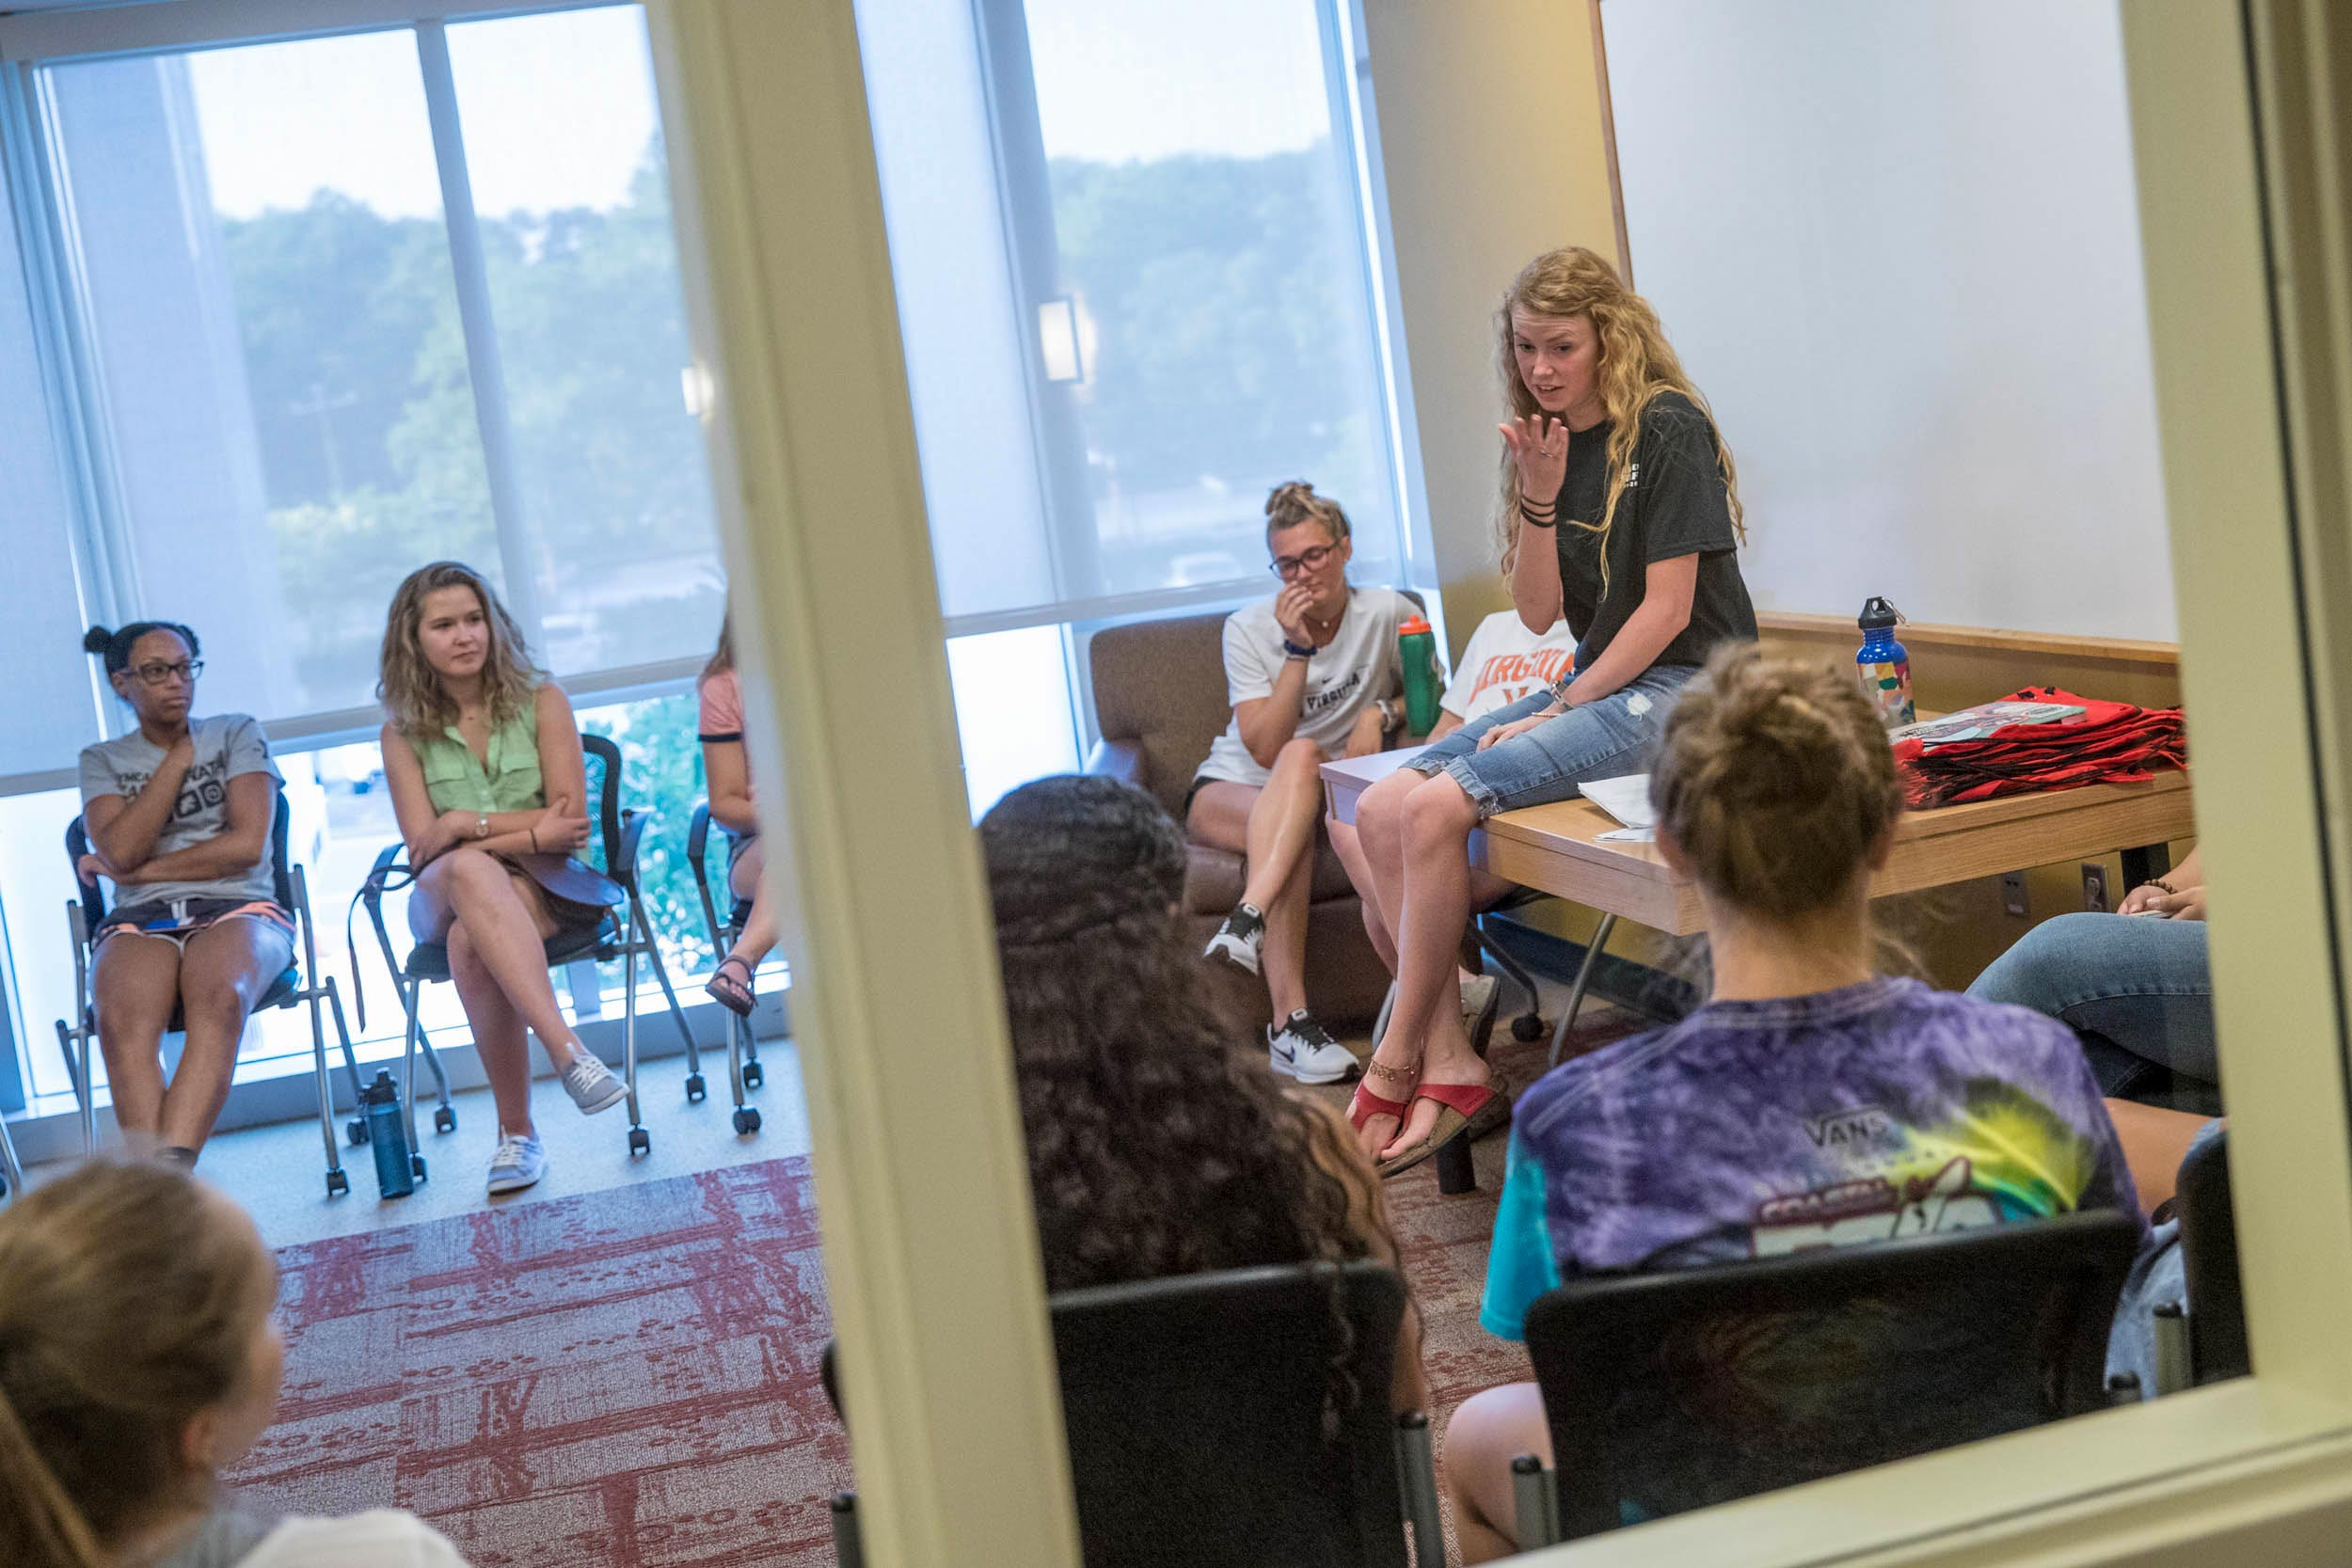 Former RA Rebecca Lewis addresses her hall in 2017. After move-in, every hall attends a mandatory welcome meeting where their RA answers questions and shares common rules.